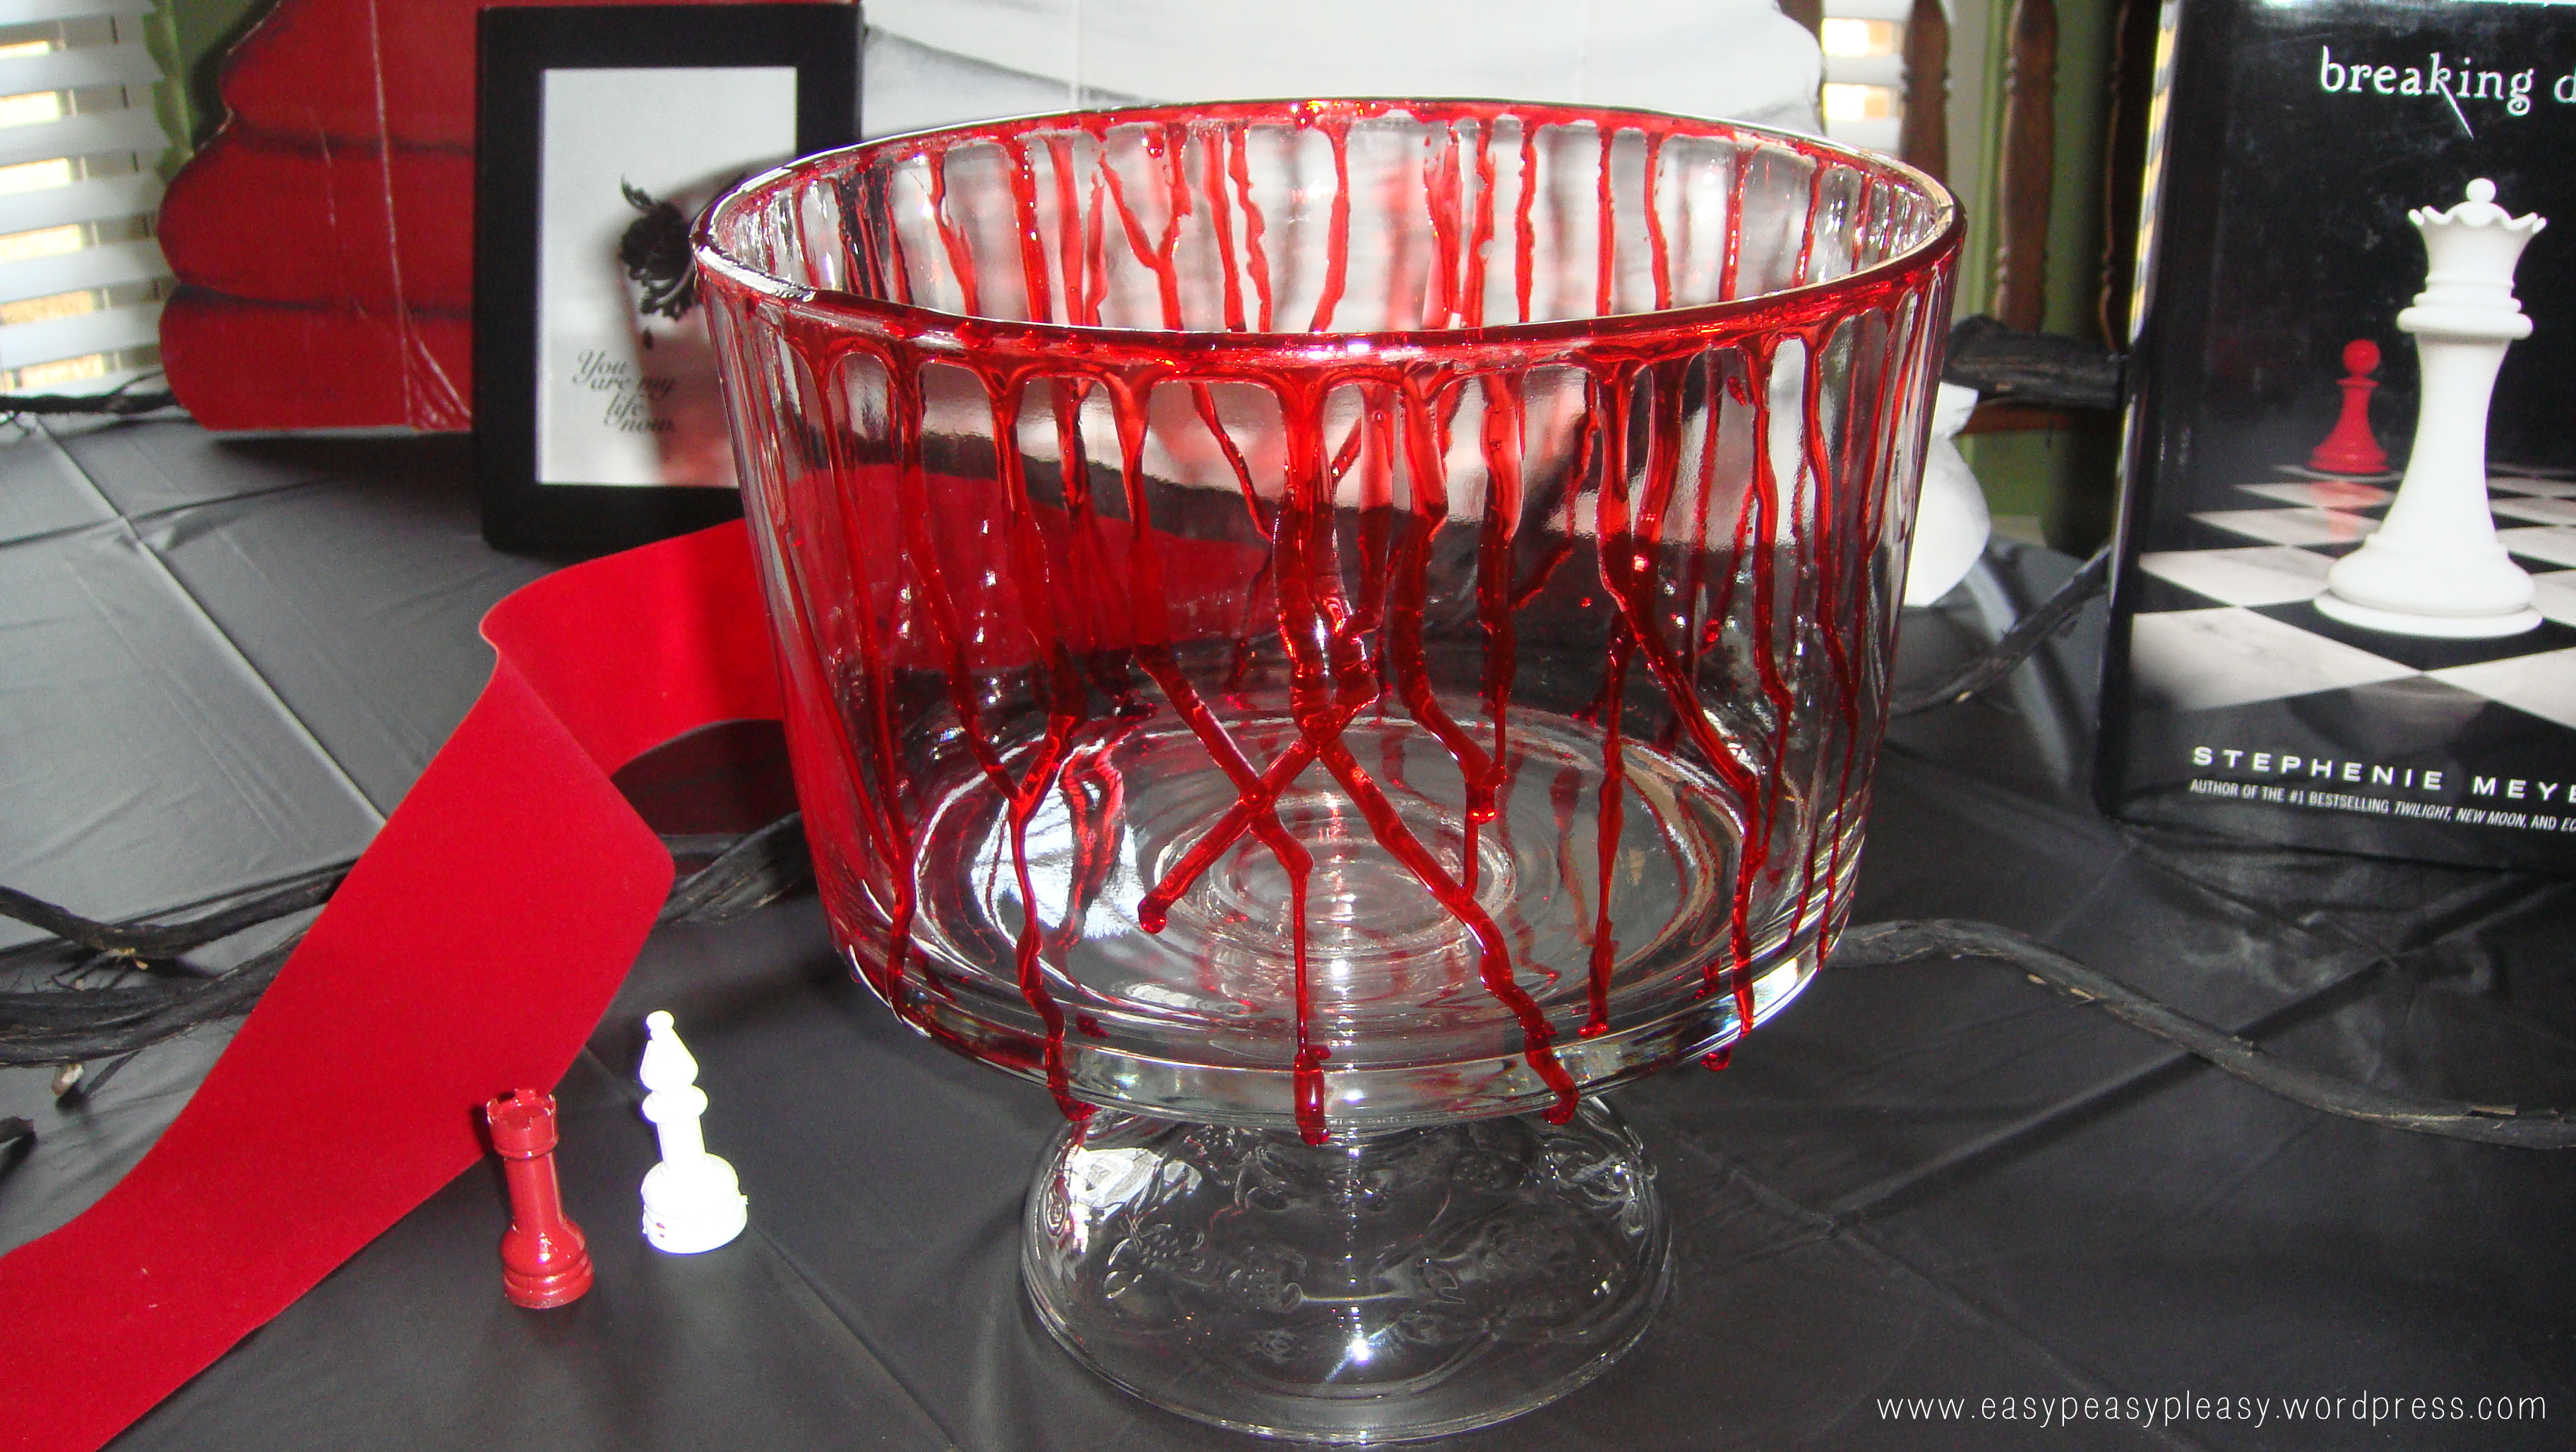 Twilight Party Serving Dish with cornstarch and red food coloring